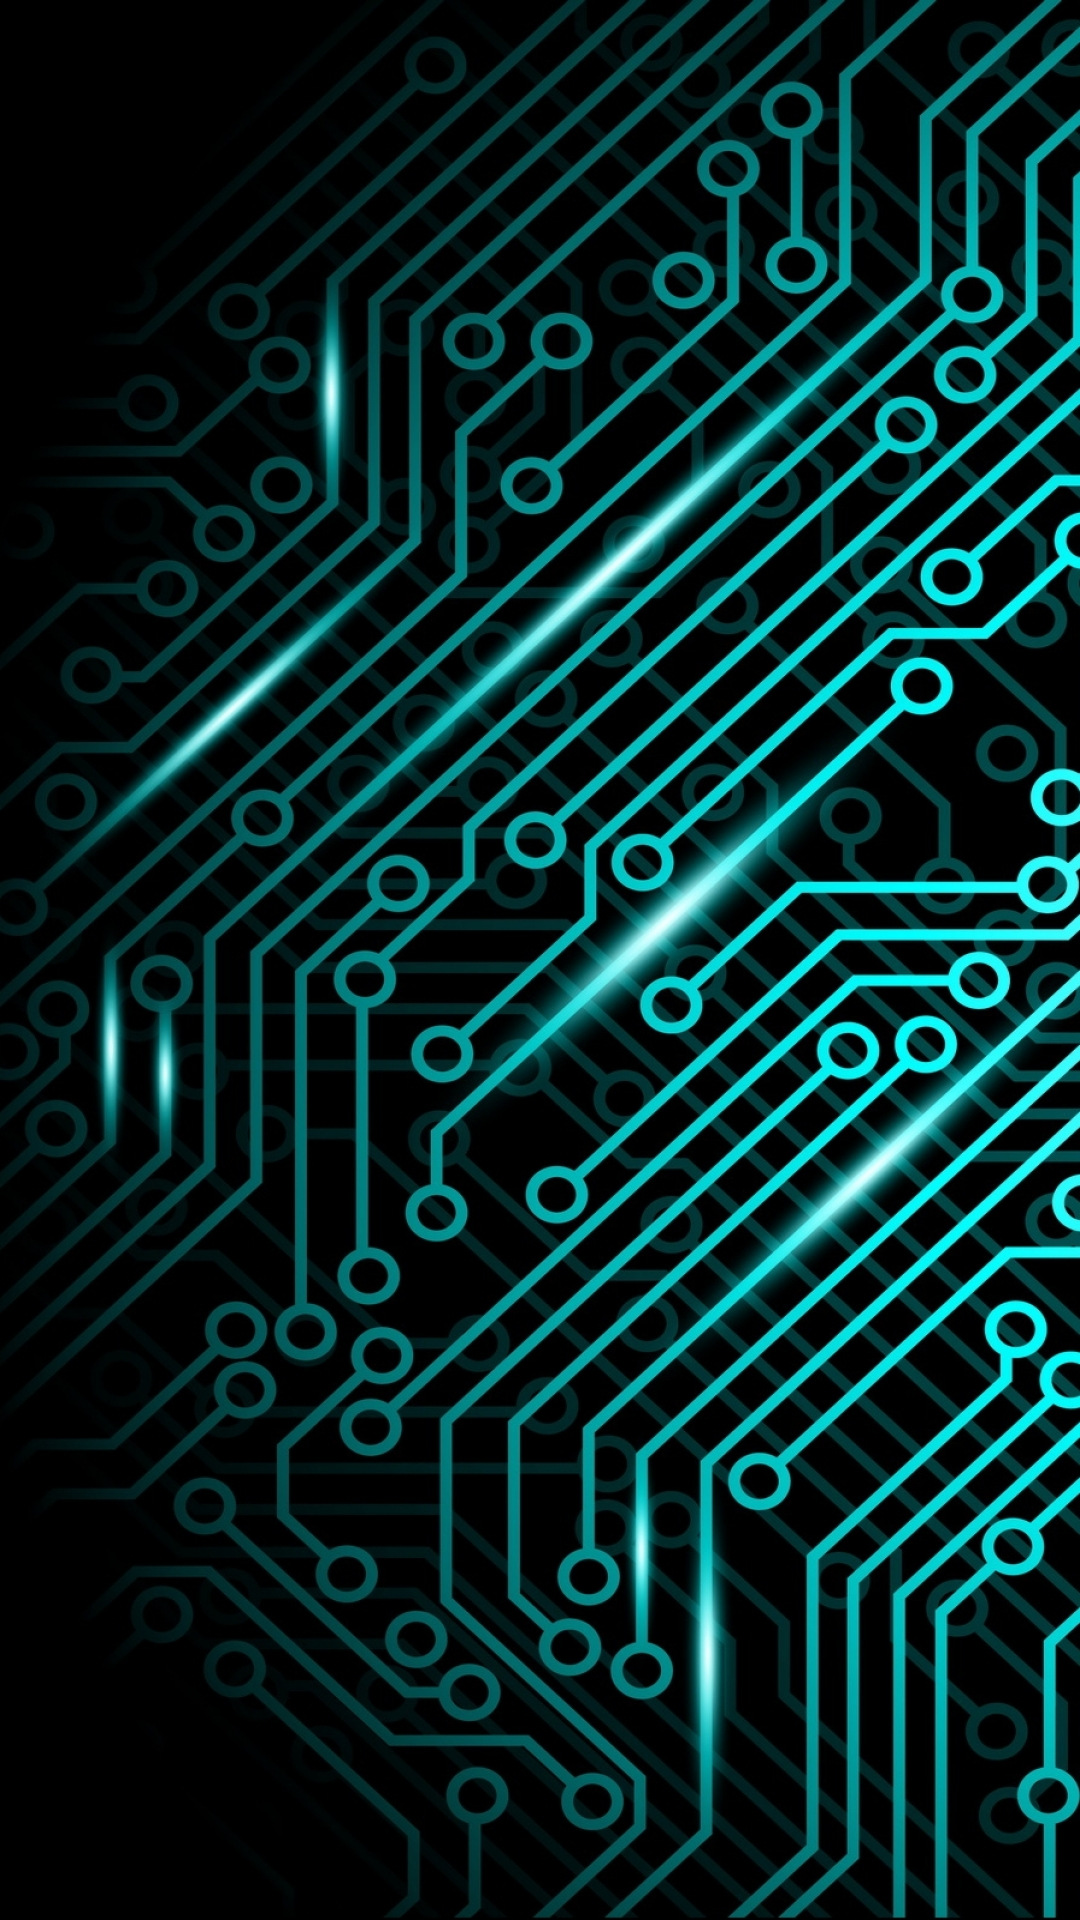 Images Of Circuitry Wallpaper Calto Circuit 1205794 Free Download